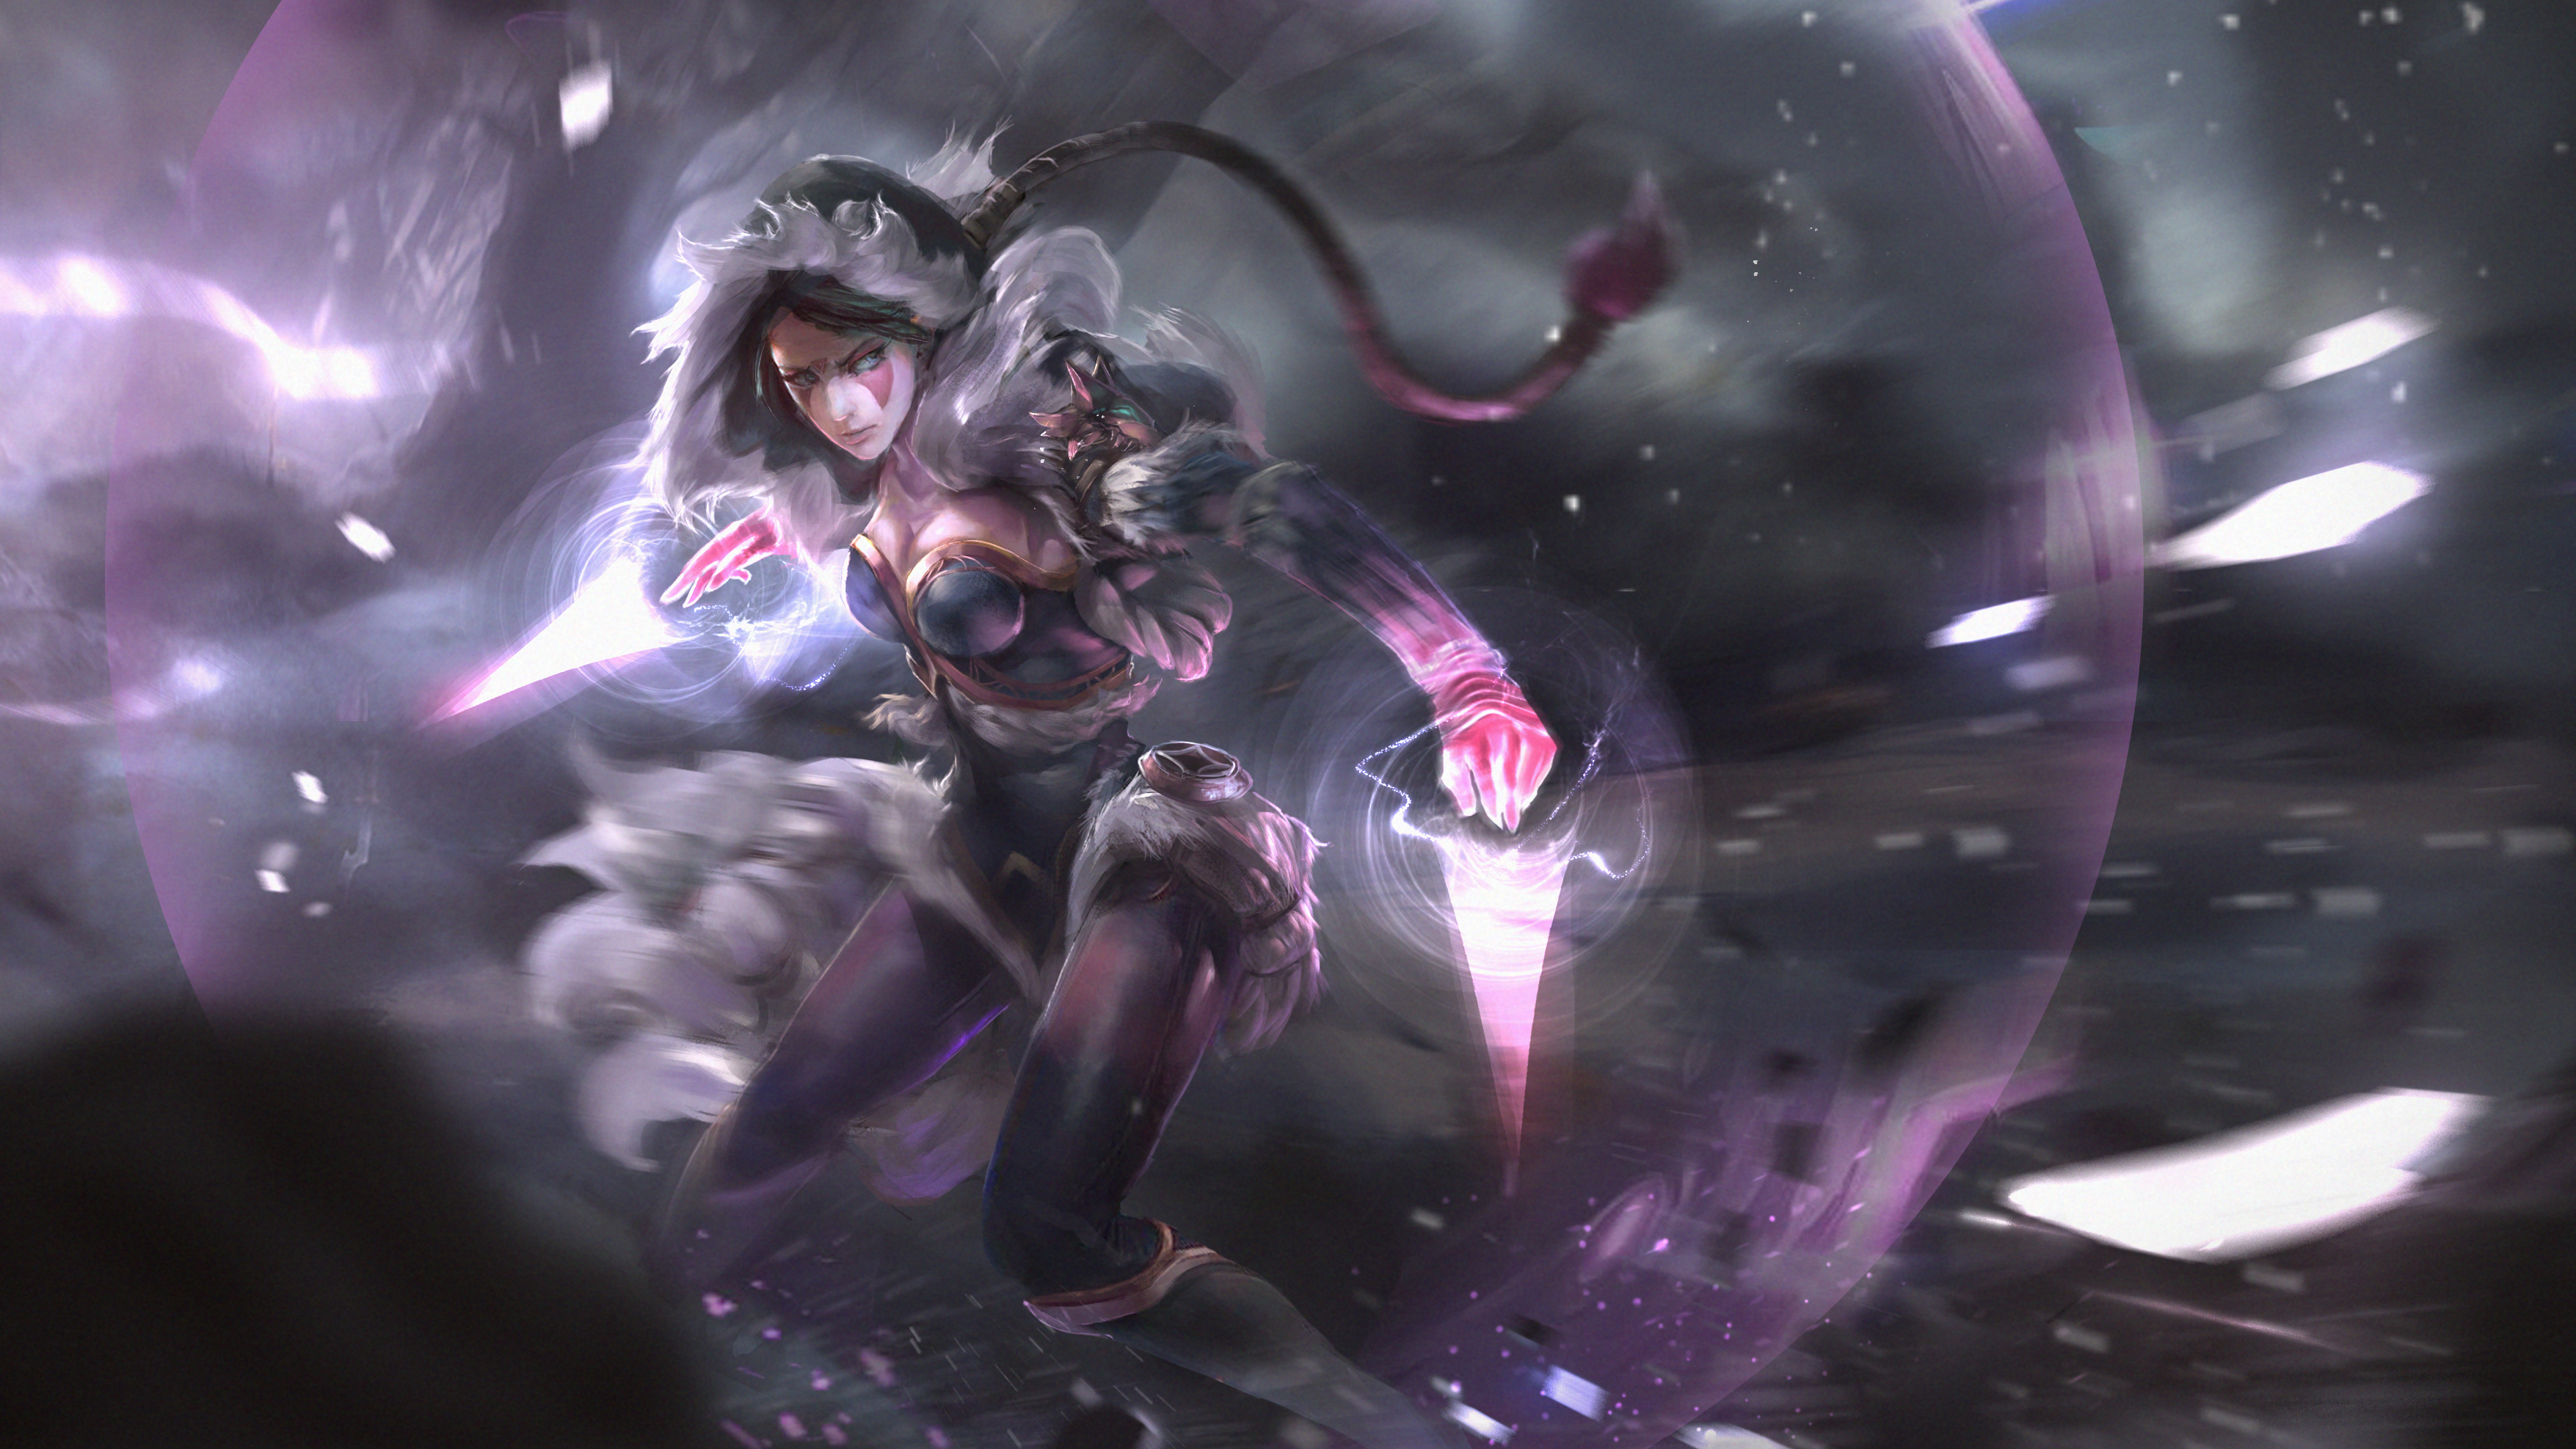 Templar Assassin wallpaper hd Dota 2